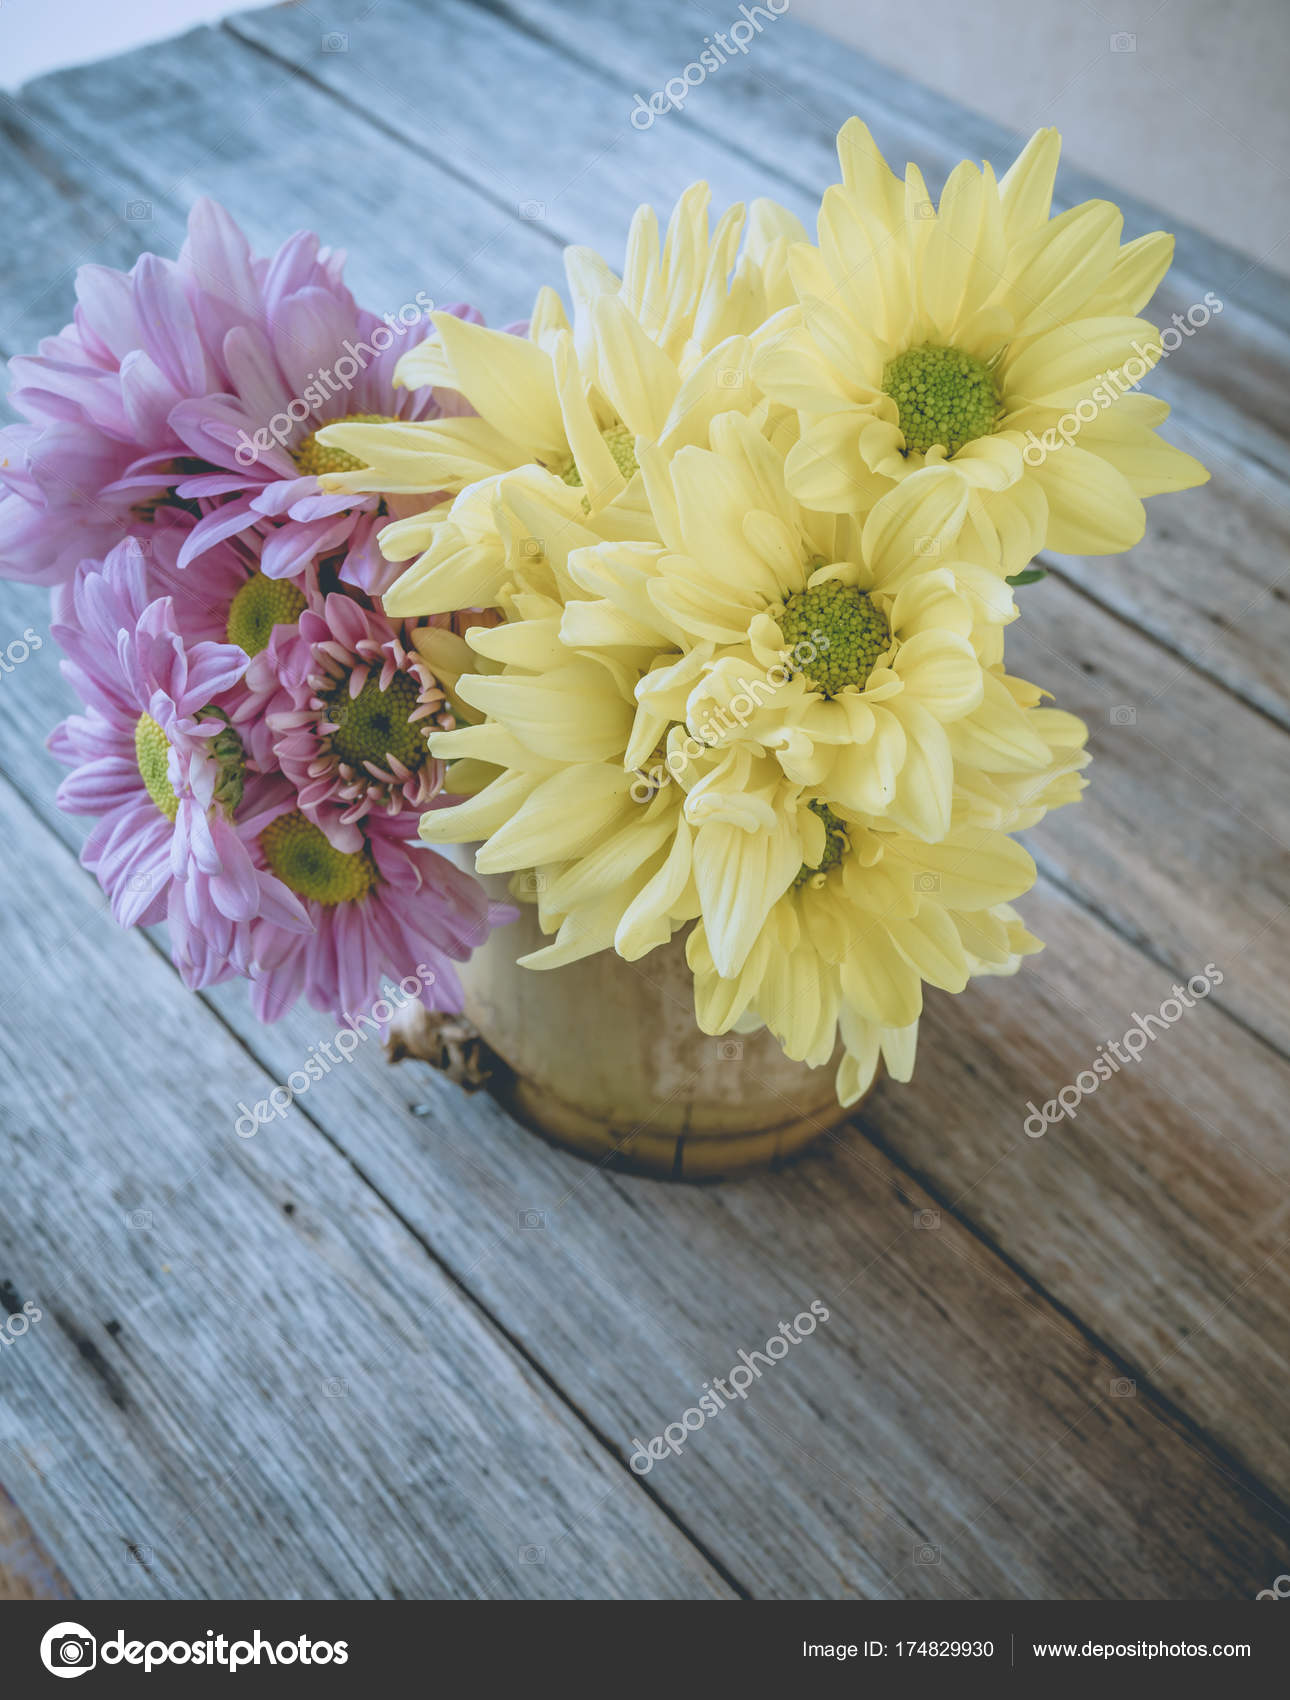 Retro Image Pink And Yellow Flower In Bamboo Vase On Table Vin